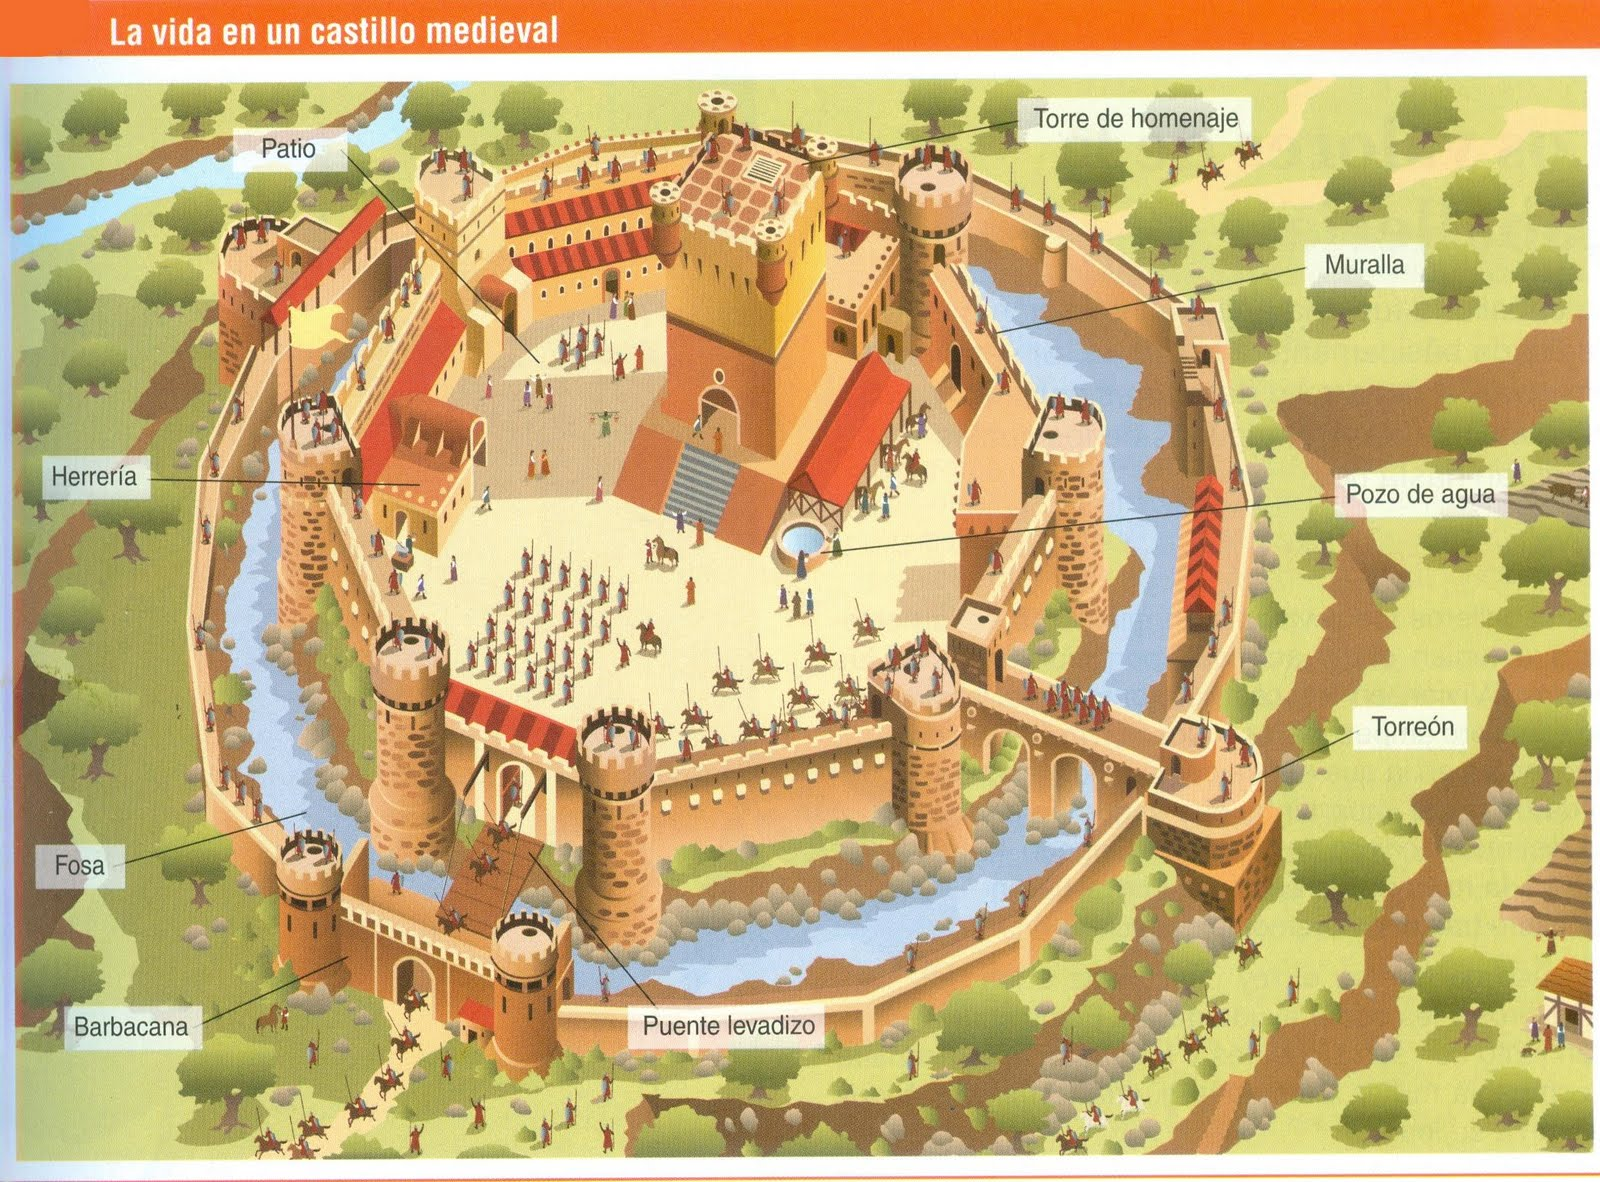 castle diagram with labels hdmi cable wiring the gallery for gt medieval castles parts labeled